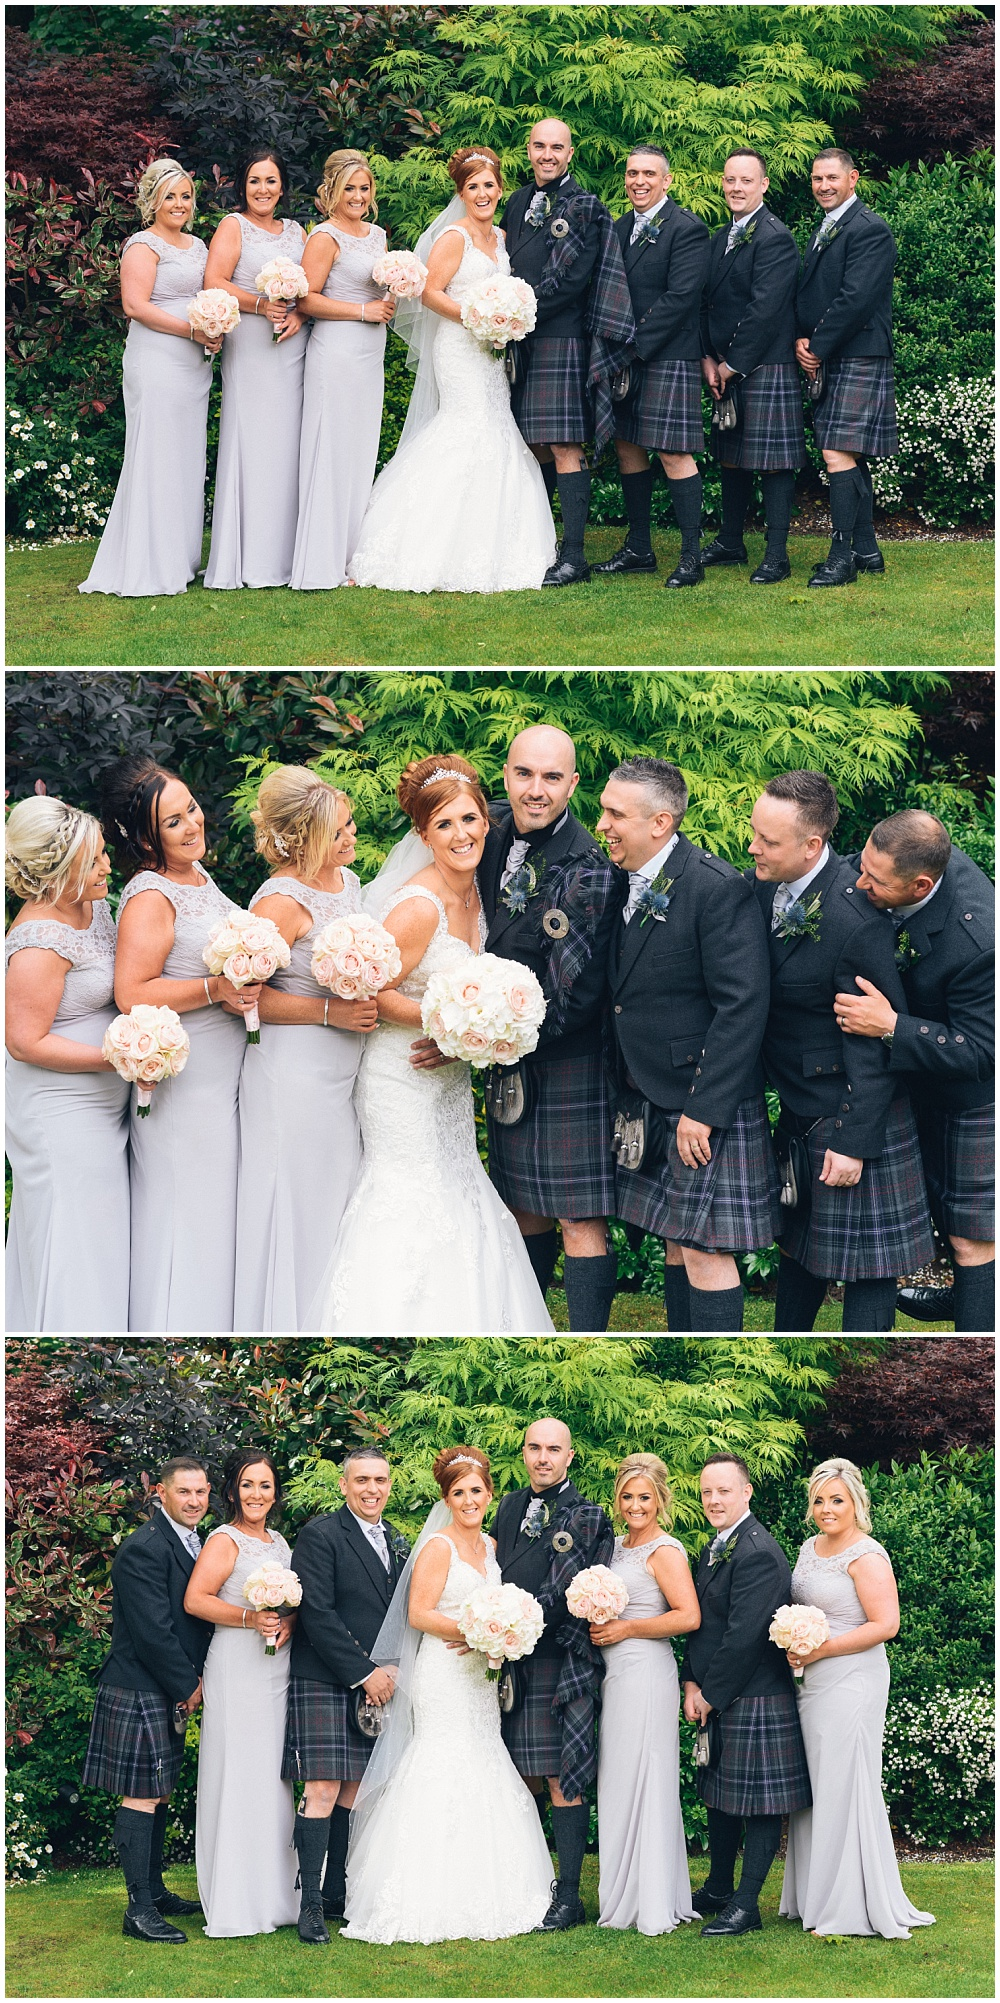 Dalziel Park,Lanarkshire,Sacred heart bellshill,Scotland,church,Dalziel Park wedding, bridesmaids, wedding photographer, wedding photography, bellshill, motherwell